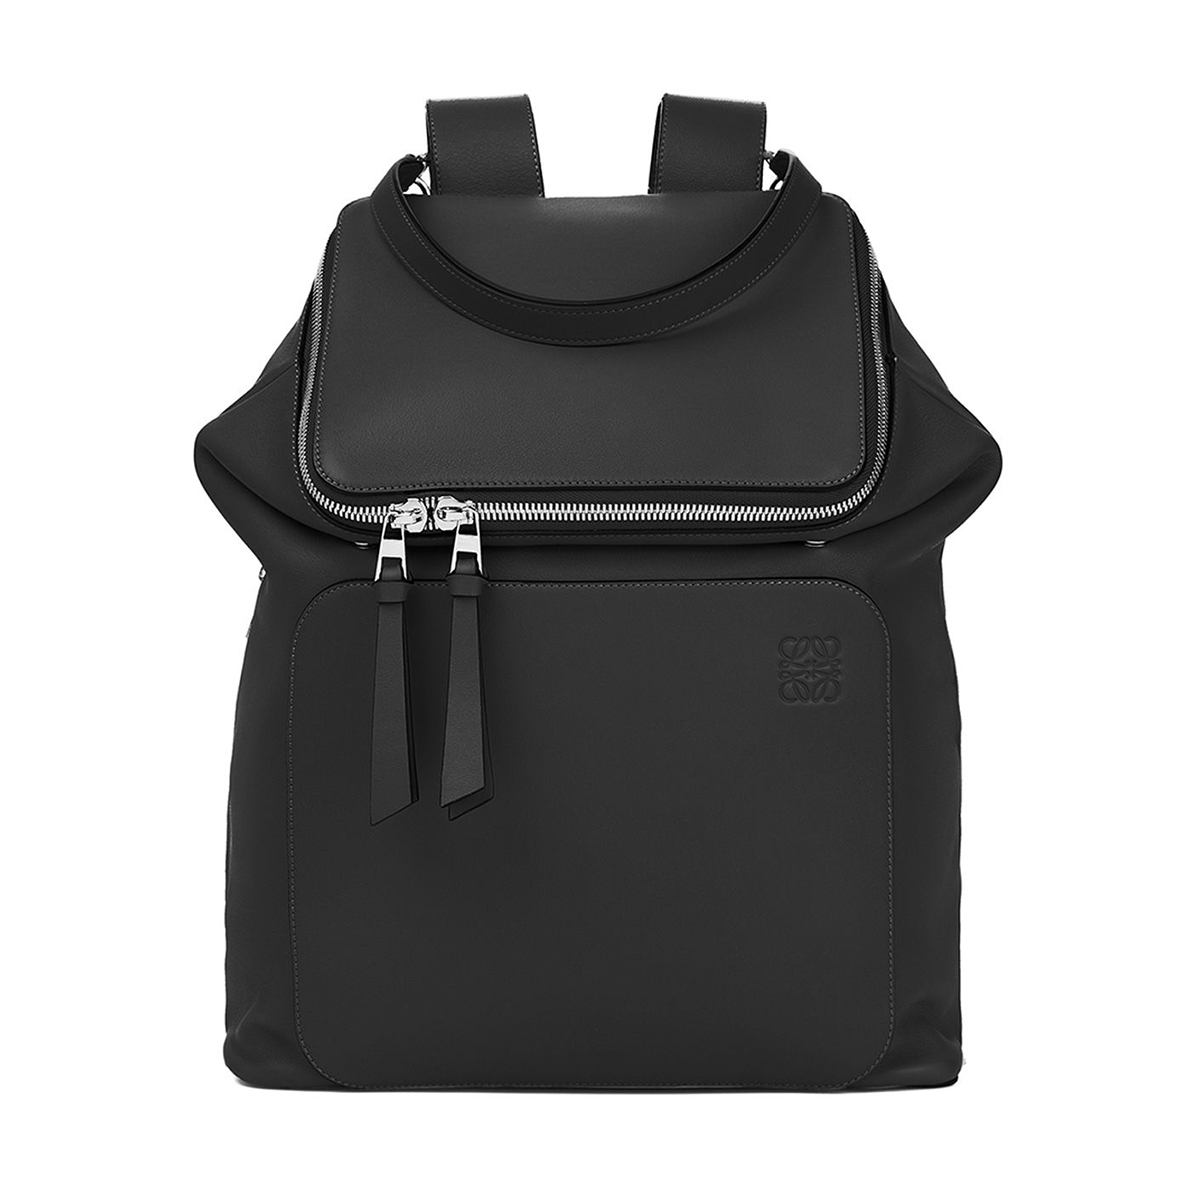 GOYA BACKPACK 【送料無料】